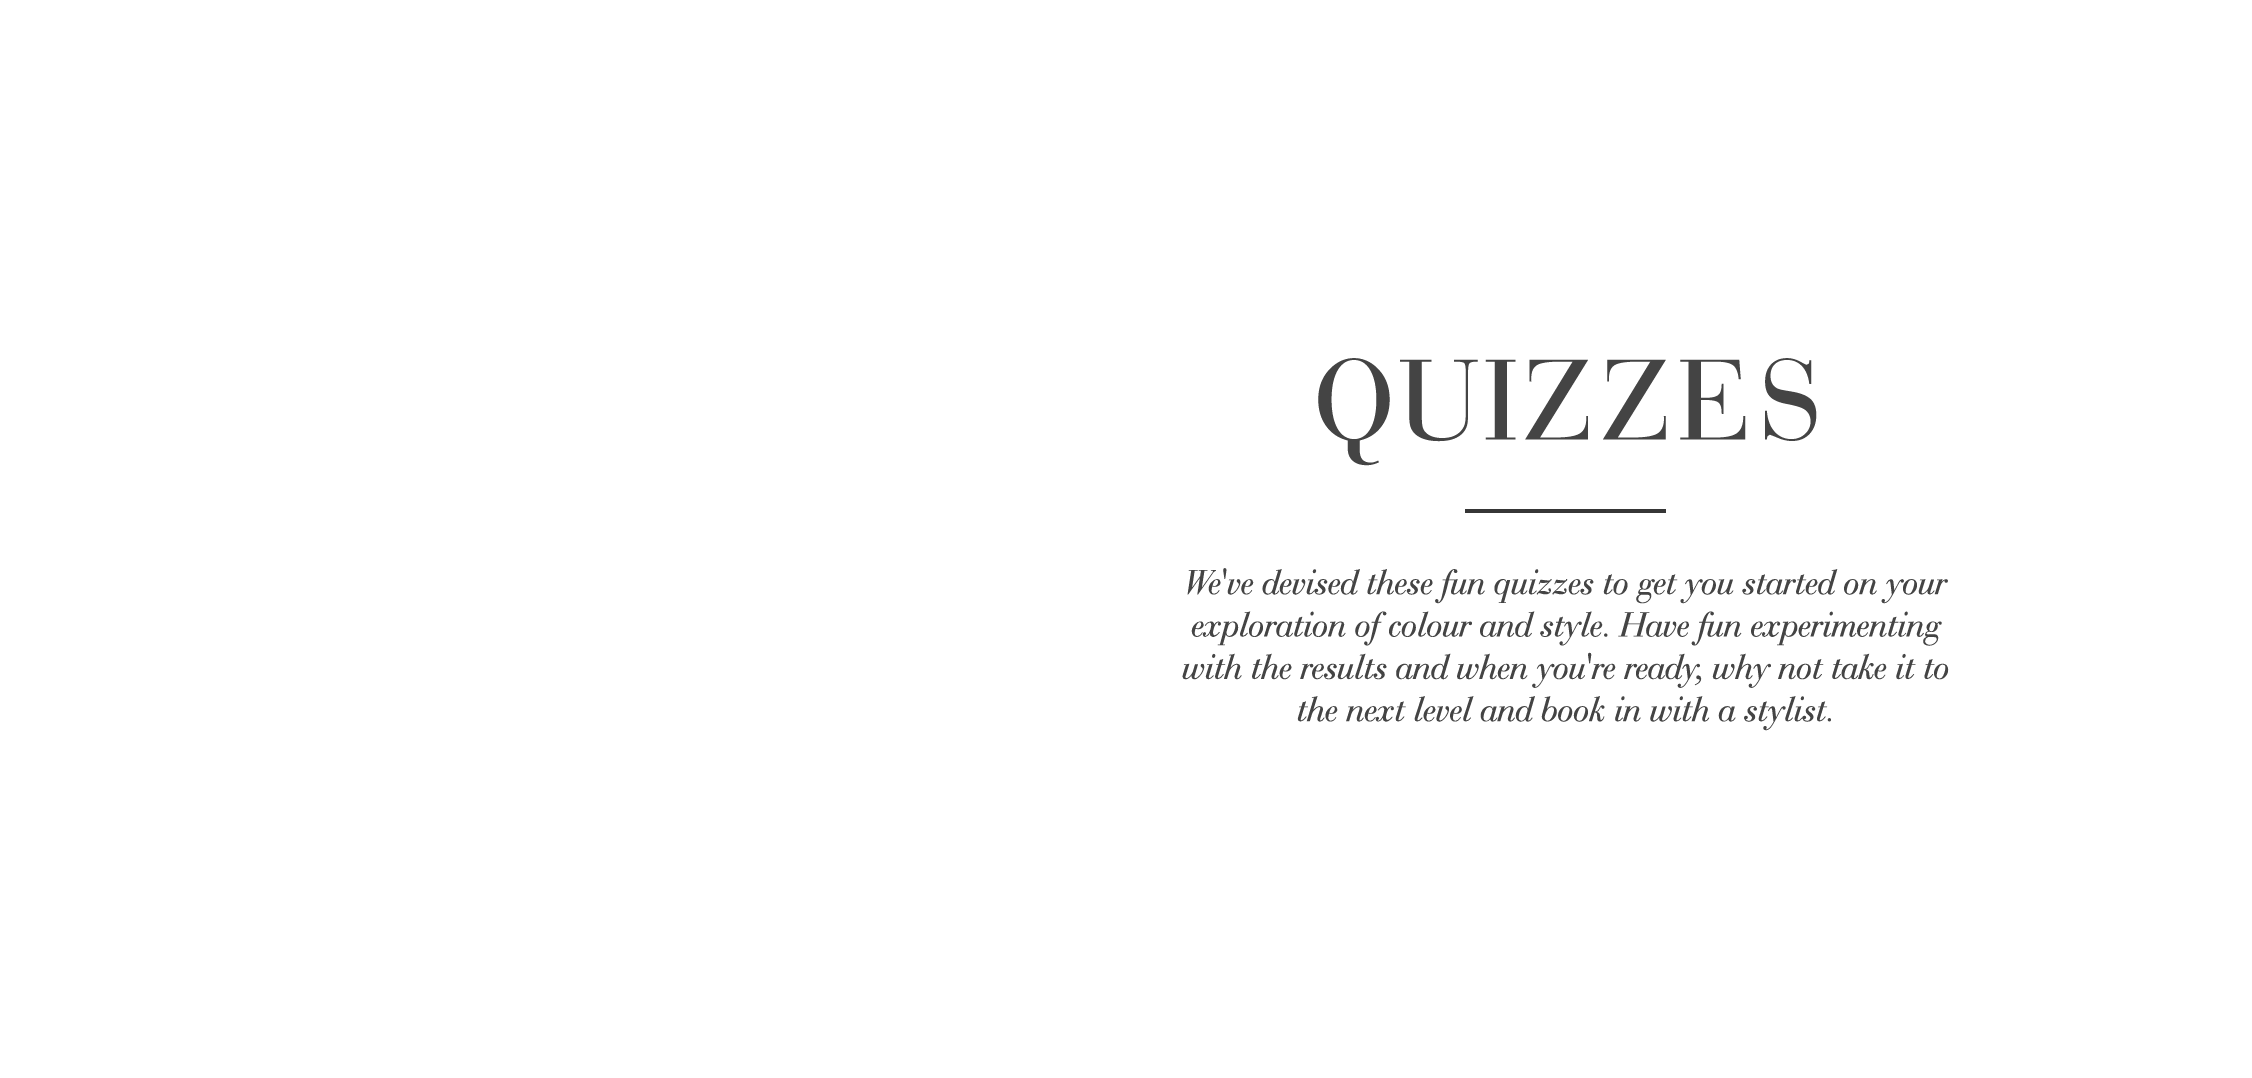 raw-quizzes_overlay_c.png